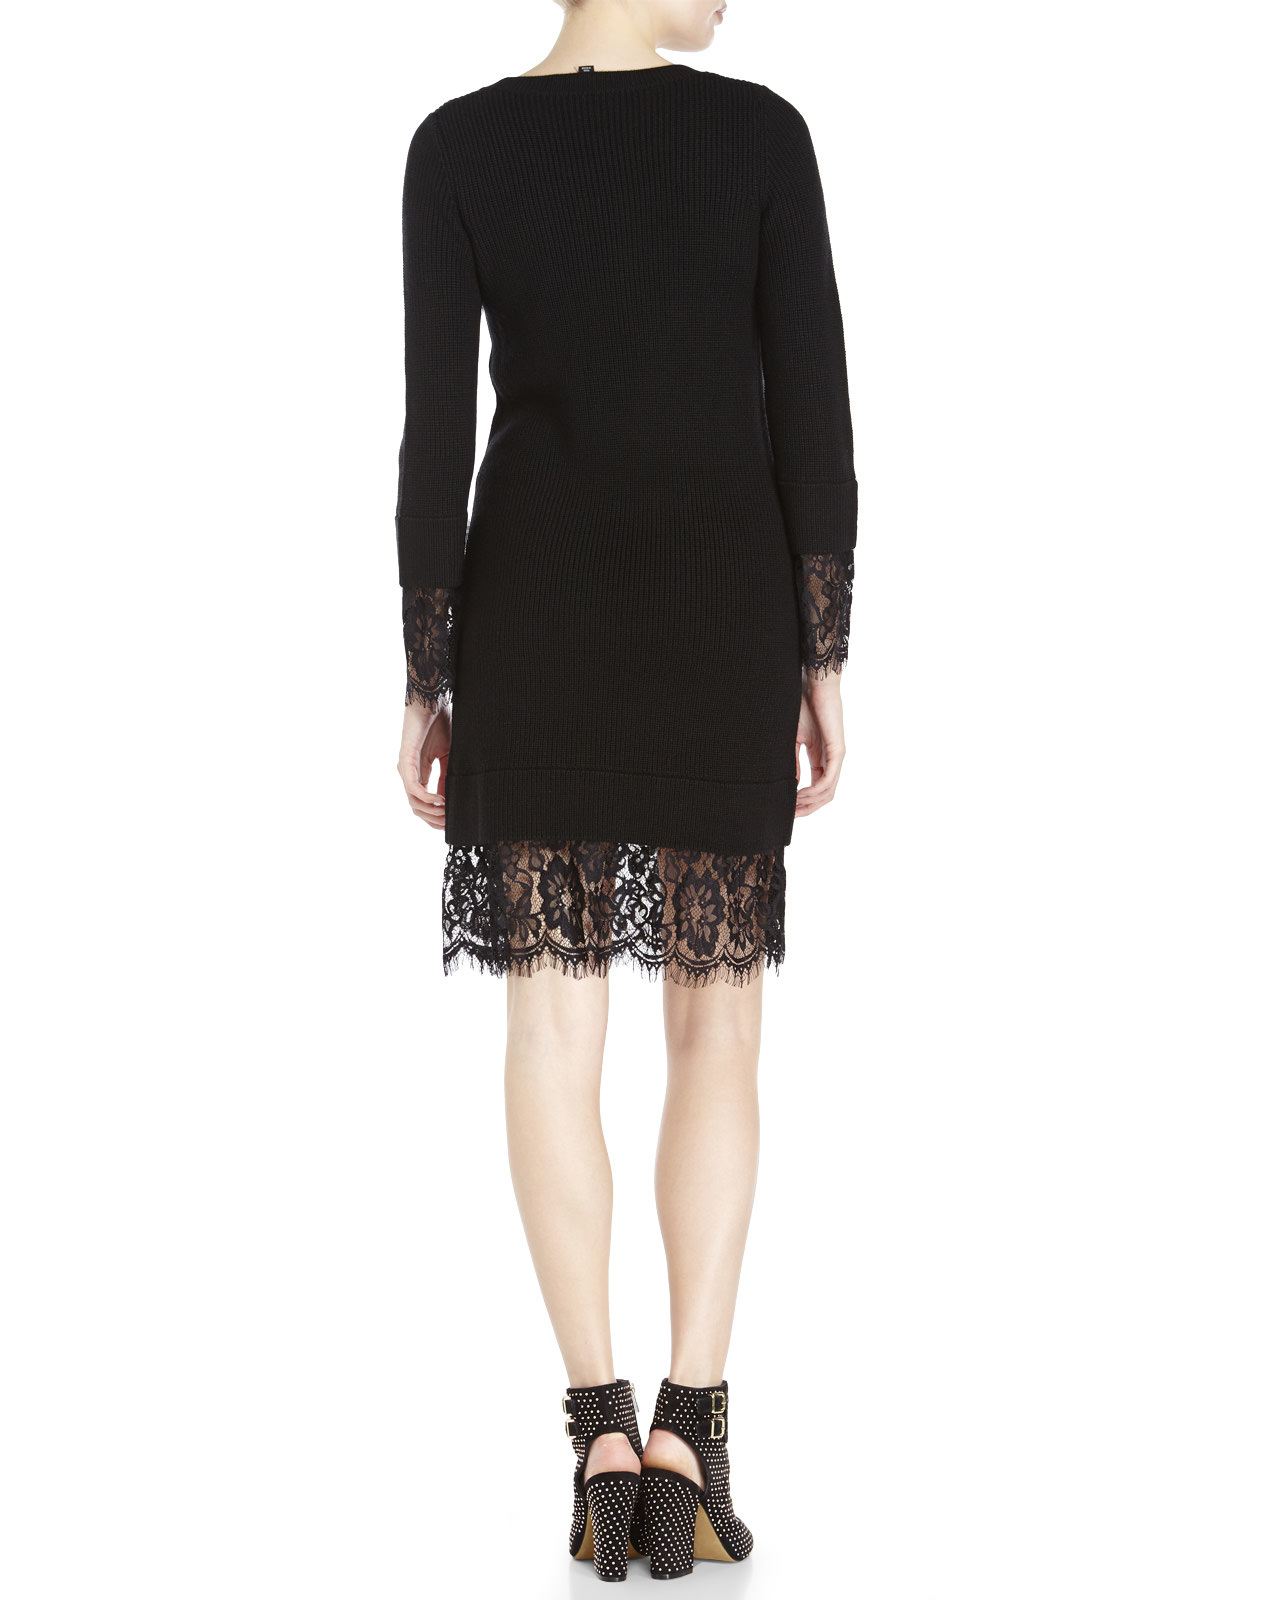 Love Moschino lace trim sweater dress Shop For Sale Online Clearance Authentic From China Outlet 2018 New 6h2I3Kd